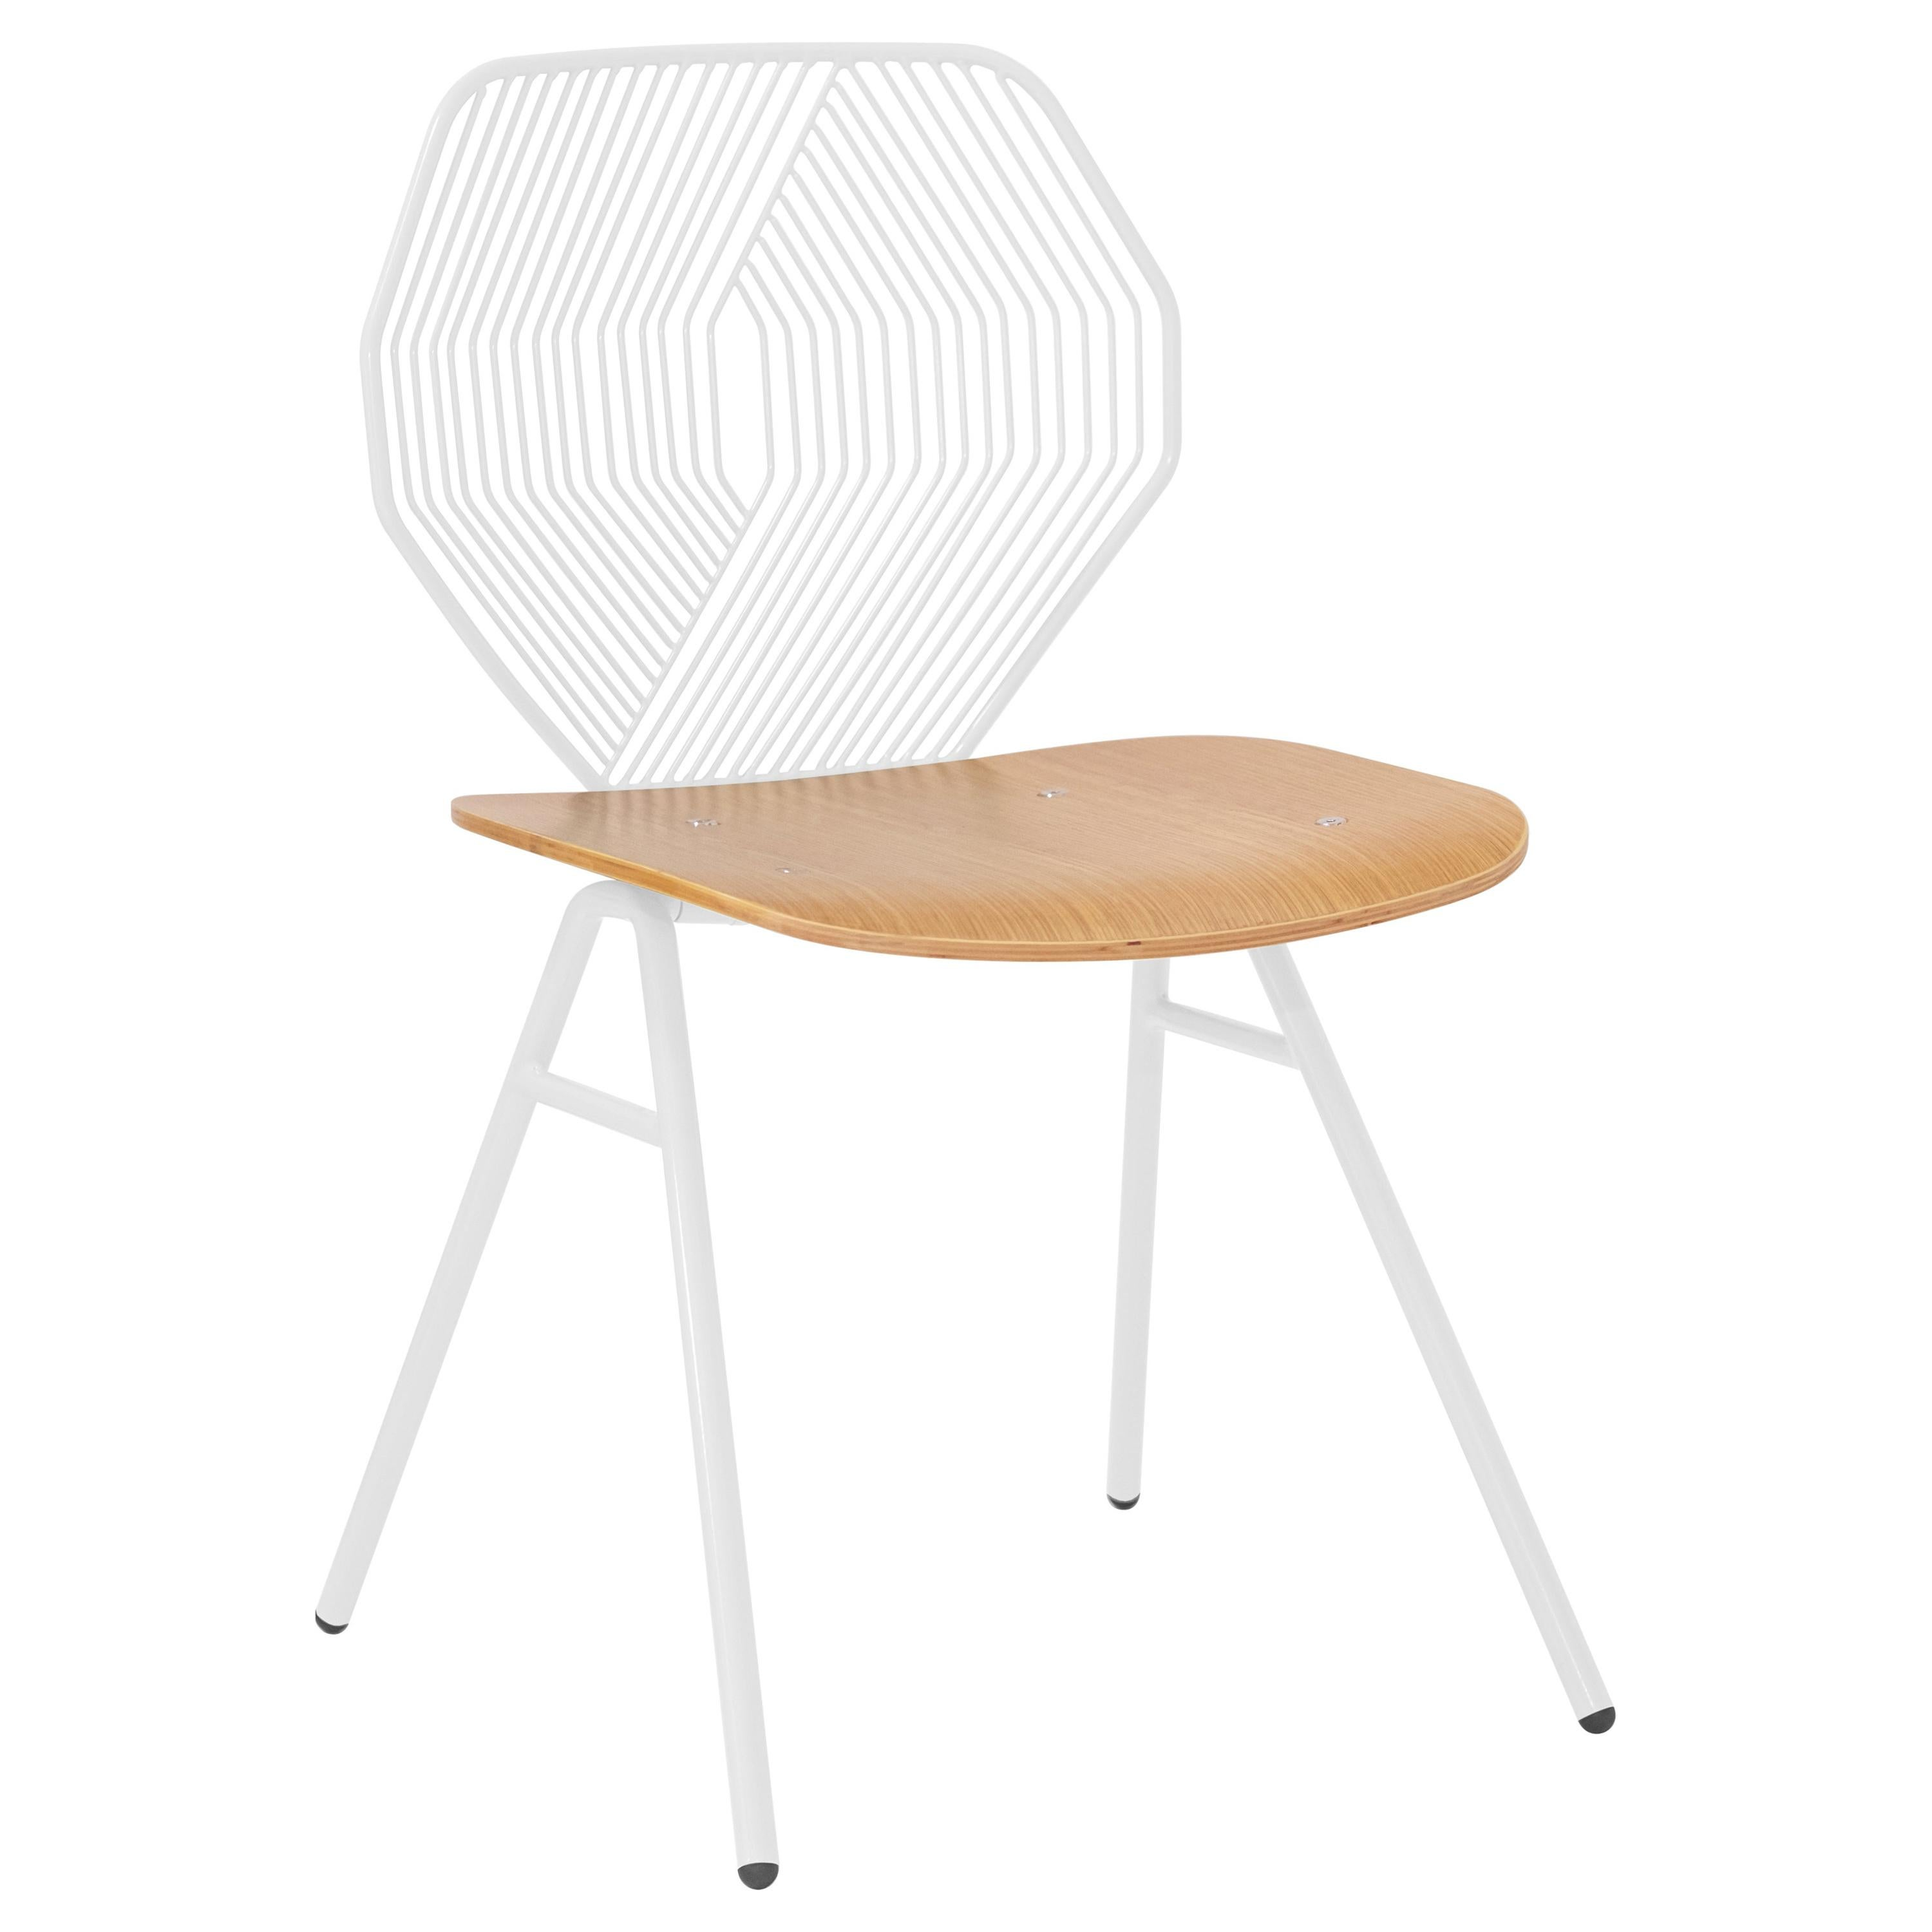 Wood Side Chair, Modern Minimalist Design in White by Bend Goods